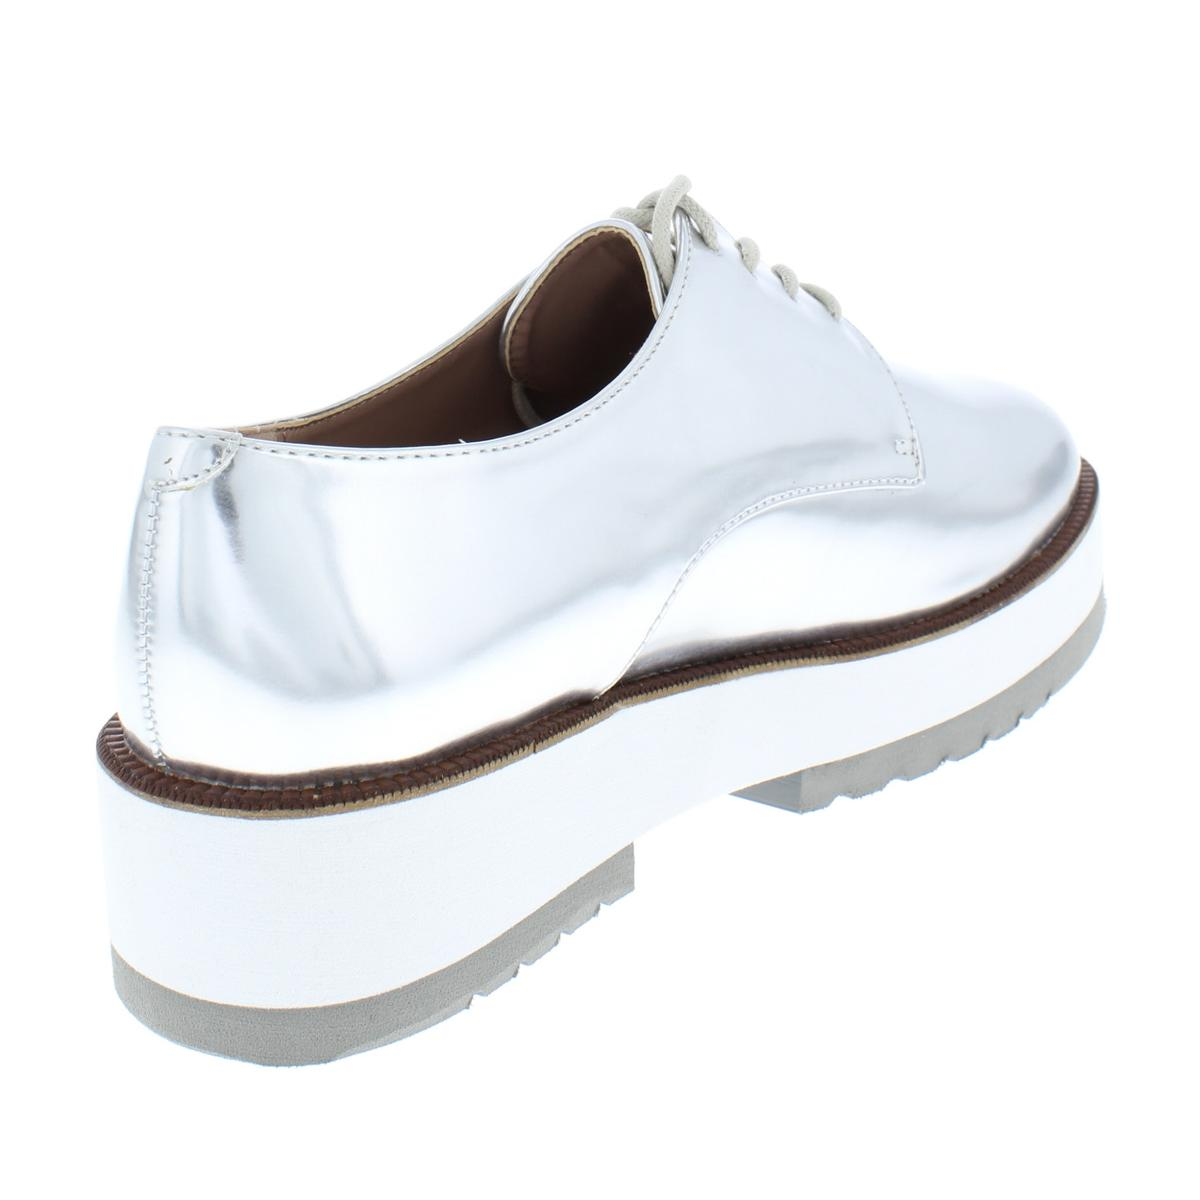 Kensie-Womens-Brayan-Solid-Patent-Casual-Oxfords-Platforms-BHFO-4739 thumbnail 4